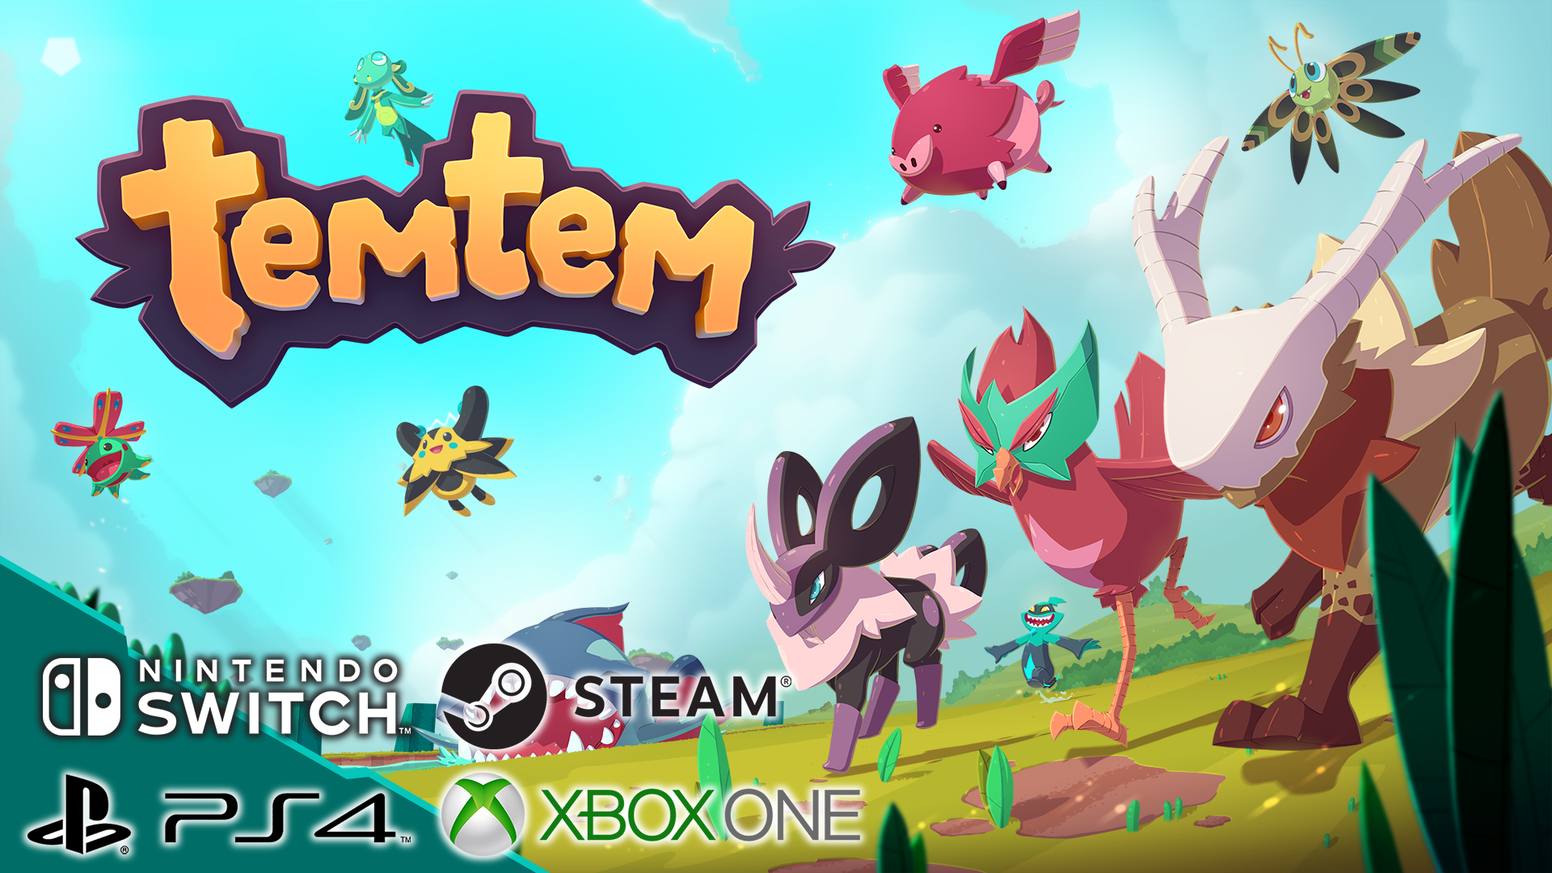 Seek adventure in the lovely Airborne Archipelago alongside your Temtem squad. Catch every Temtem and battle tamers around the world.